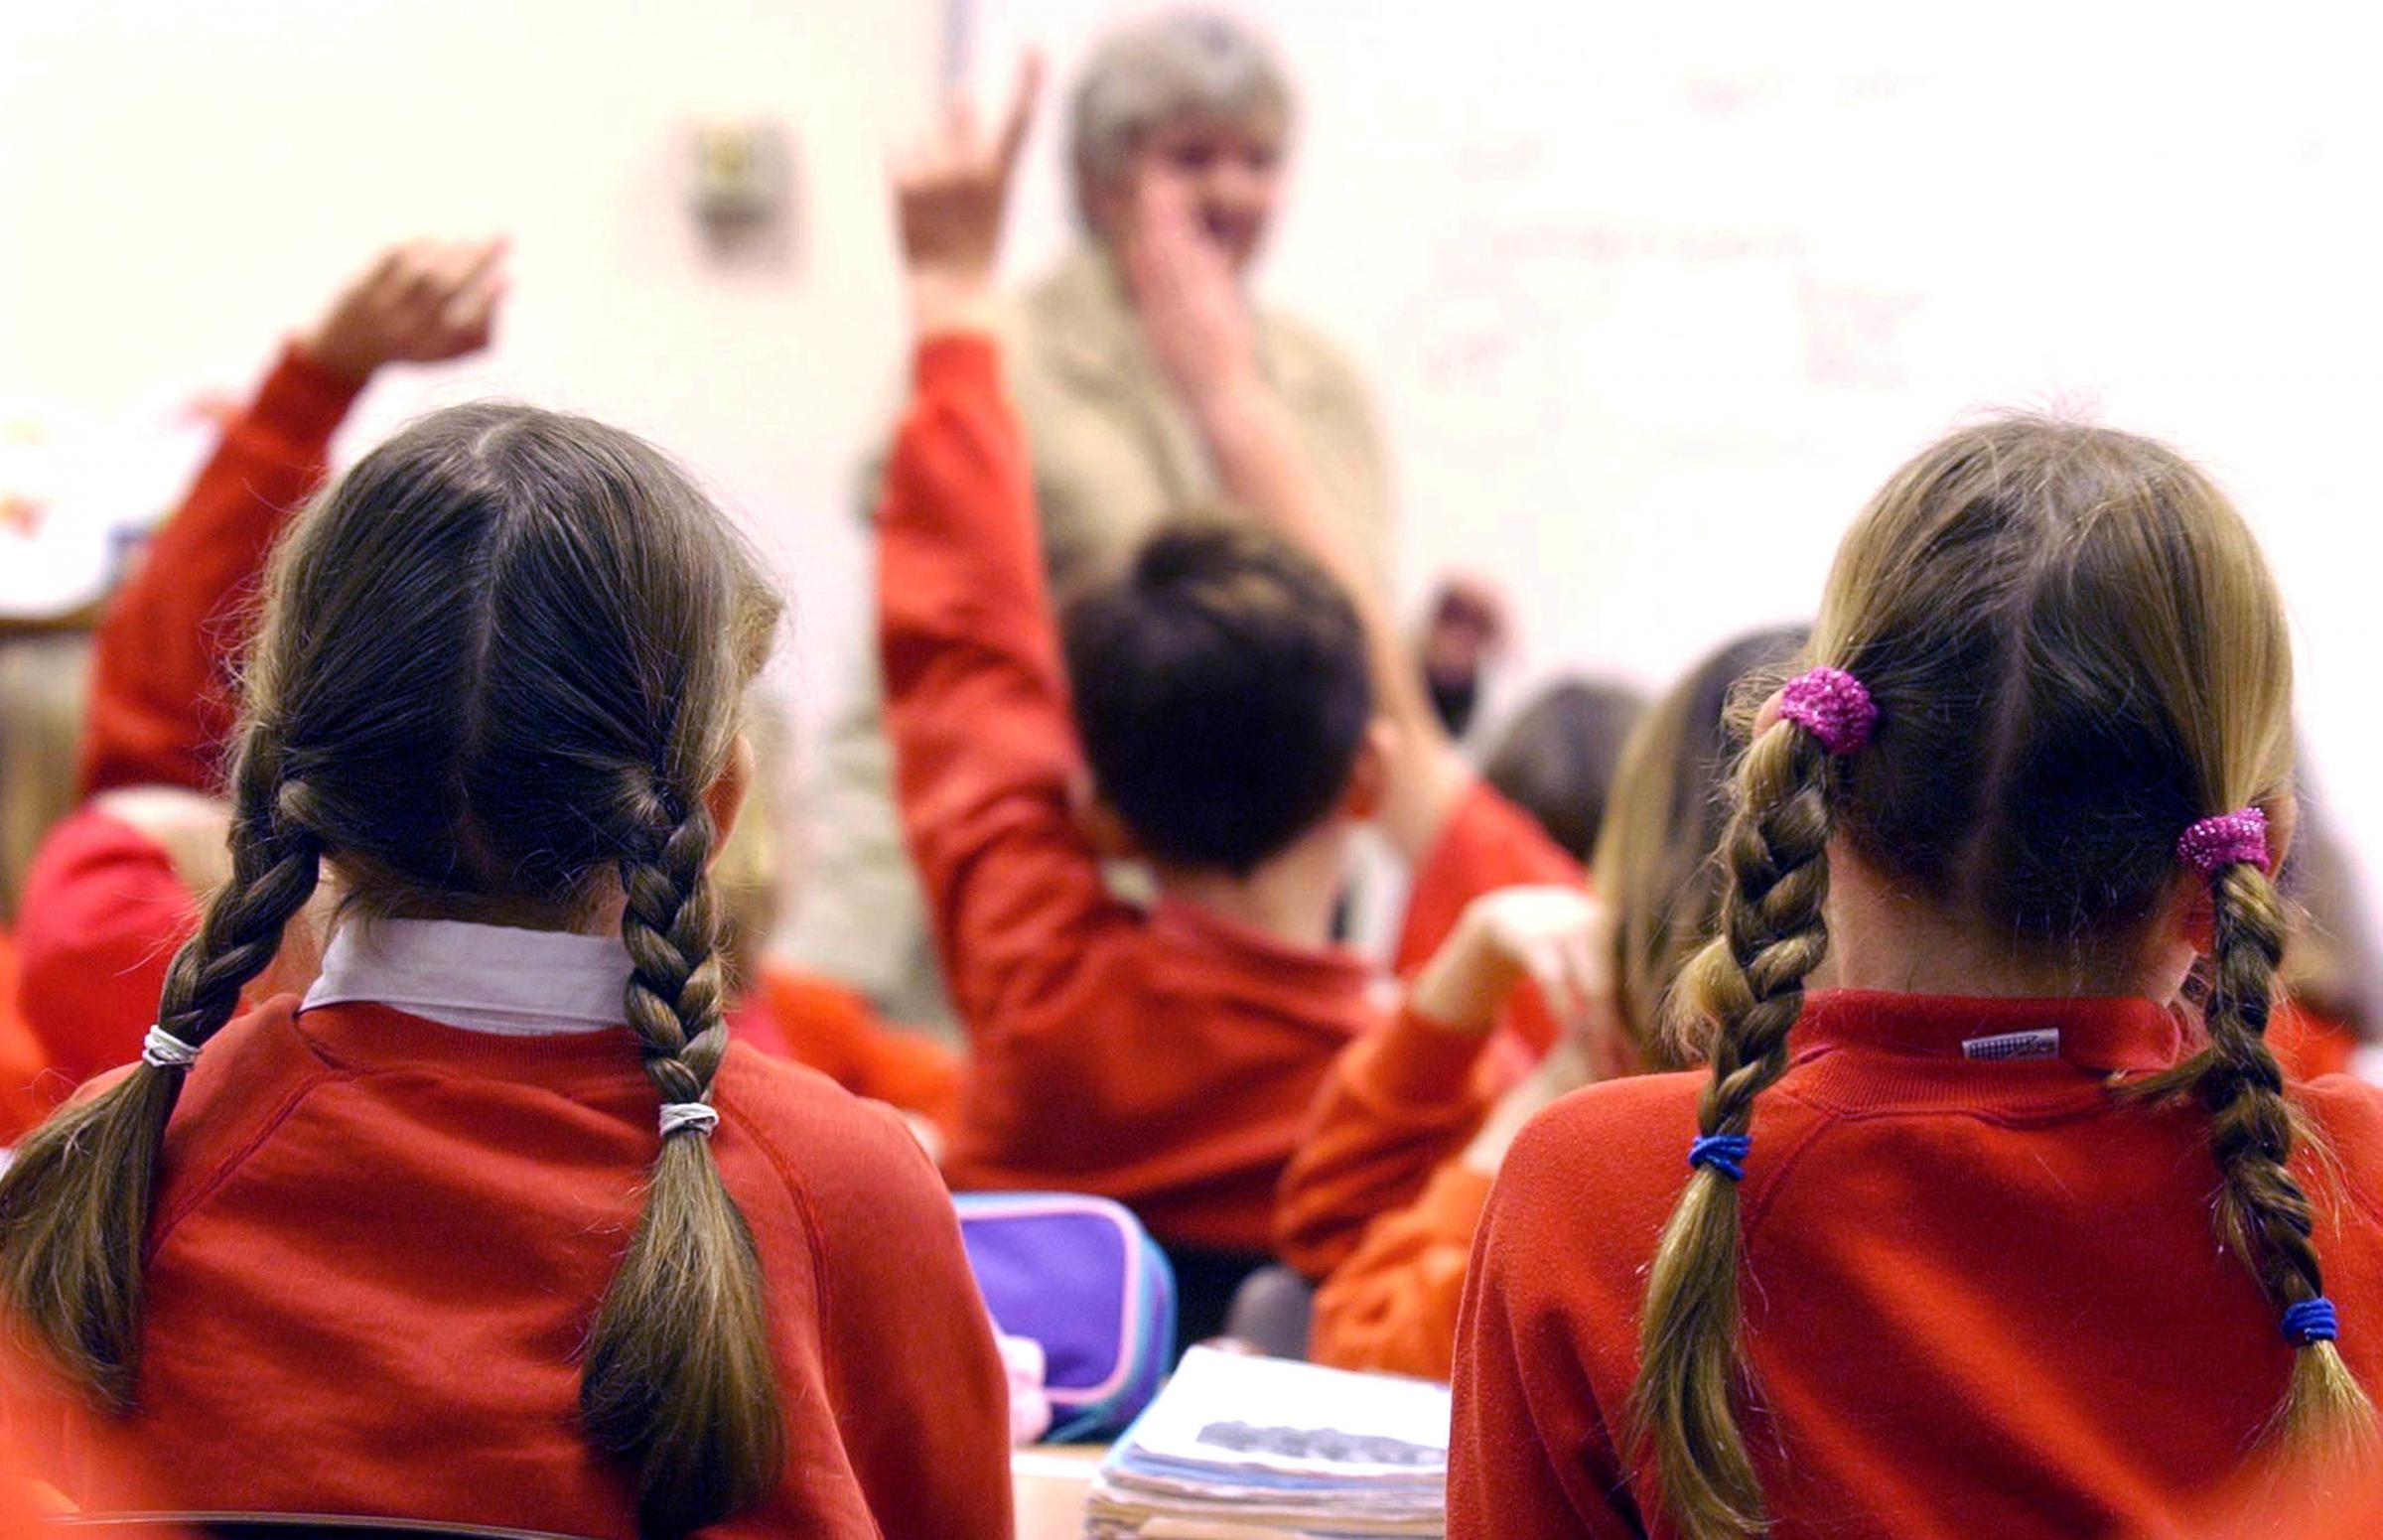 List of 21 under-performing primary schools in West Yorkshire not hitting Goverment's 'floor standard'